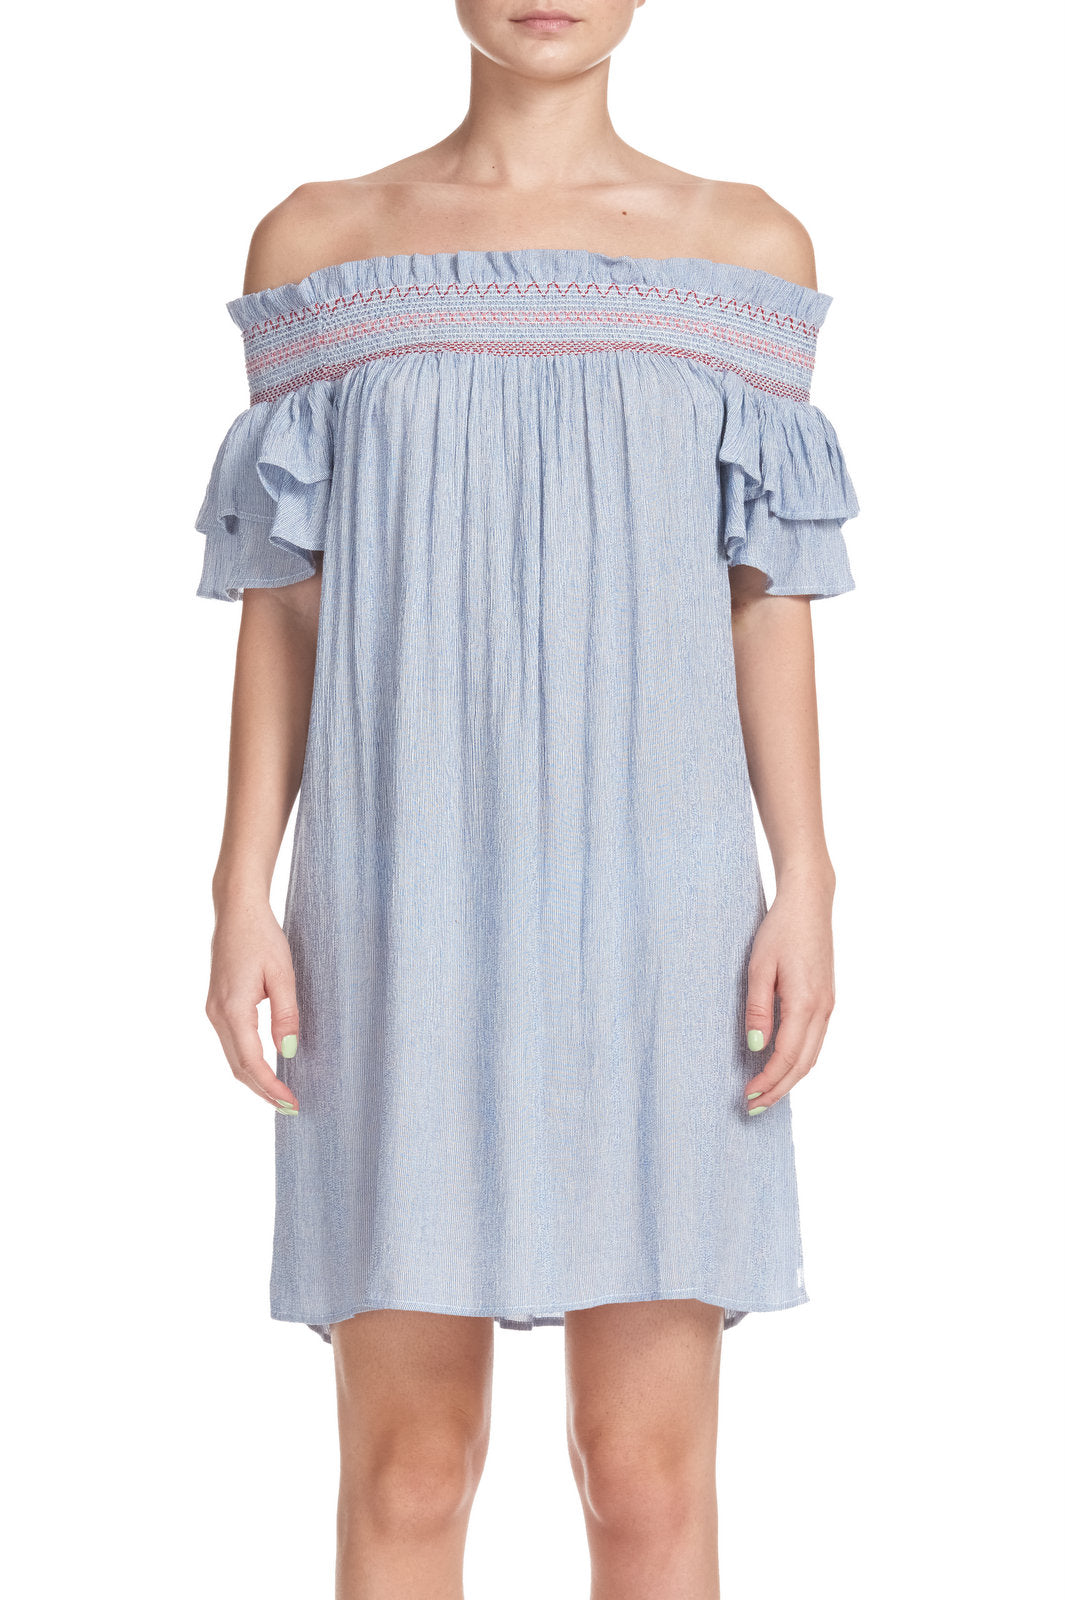 Off the Shoulder Short Dress with Ruffle Sleeves